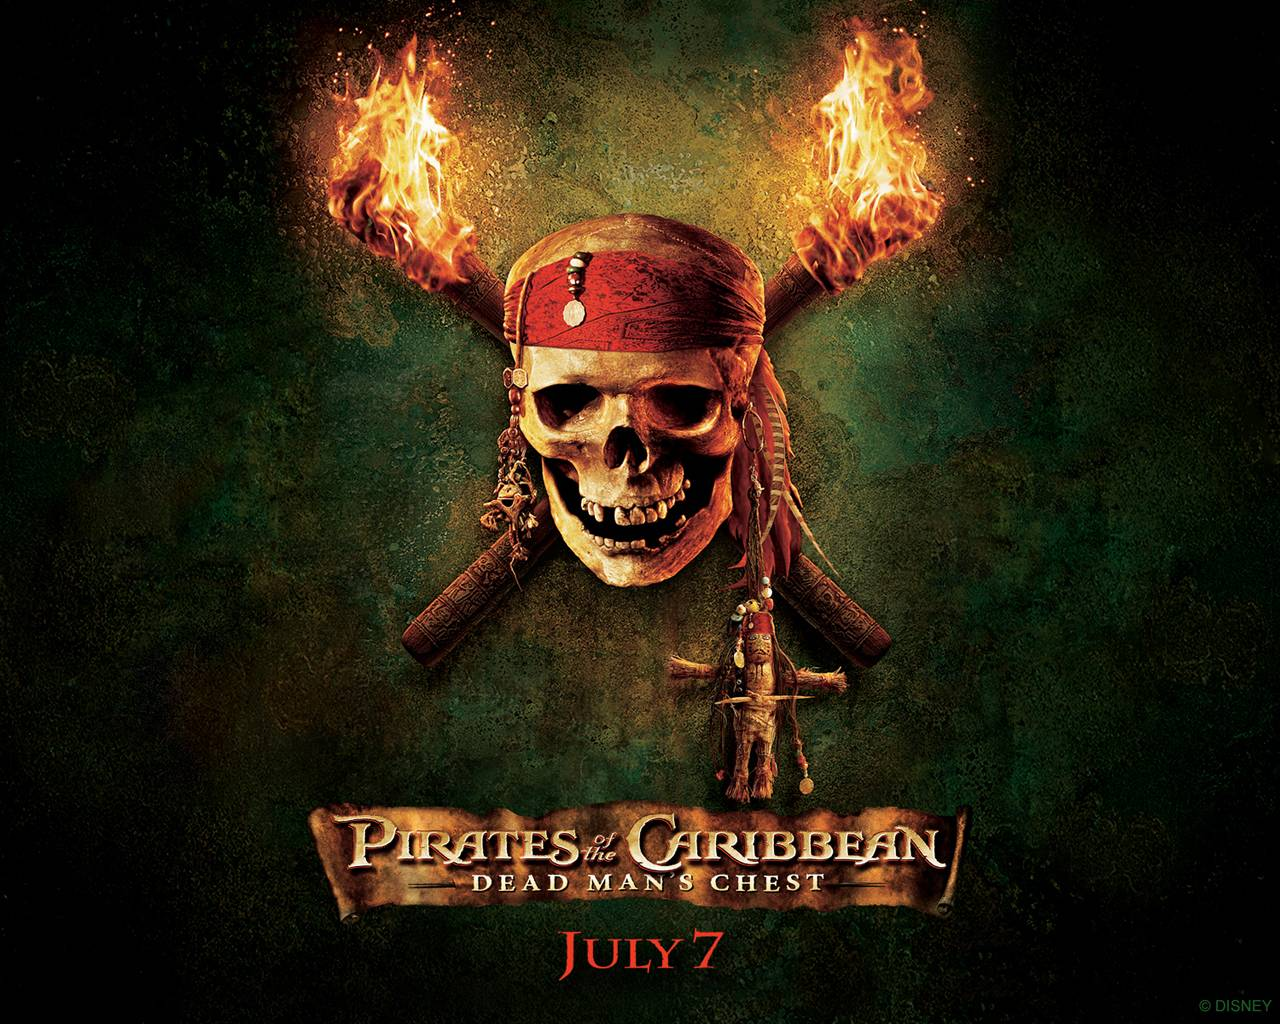 http://1.bp.blogspot.com/_e08tXXFmPM8/TSStjAIpkAI/AAAAAAAAARo/Ay4IQV8anAE/s1600/2006_pirates_of_the_carribean_wallpaper_001.jpg